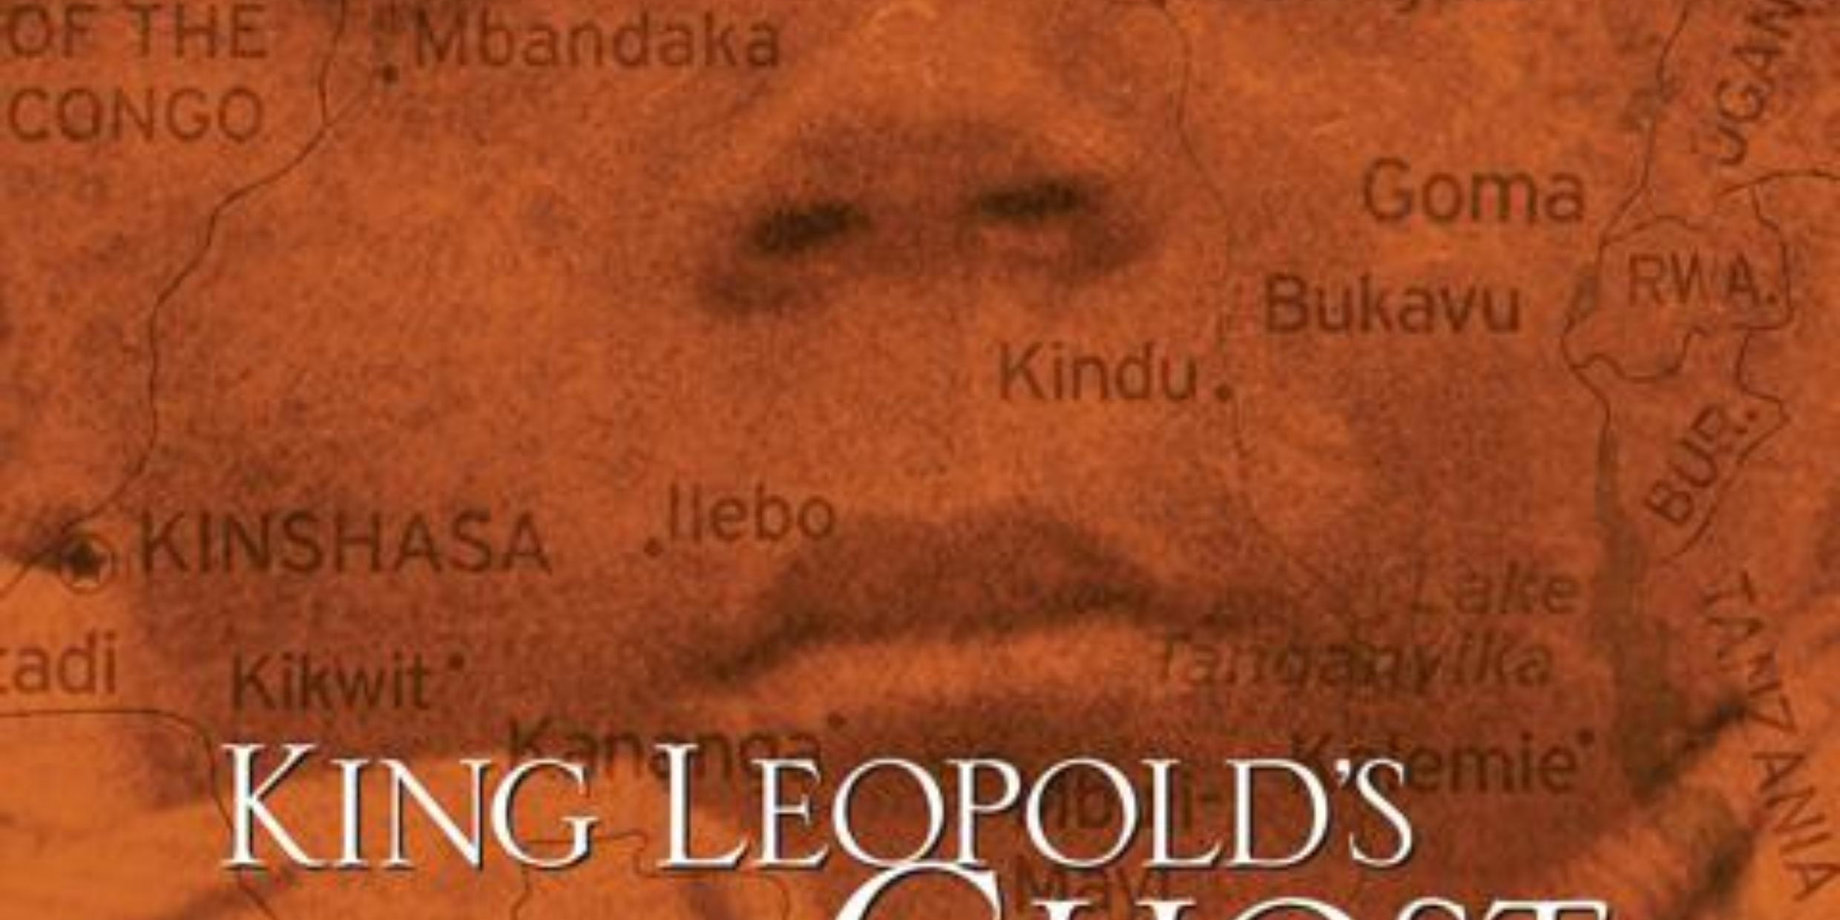 king leopold review This chapter begins the story of sir henry morton stanley, the explorer who finally conquered the congo river in the nineteenth century he was financially supported by king leopold, who secretly purchased the congo and developed its infrastructure before anyone was aware of his intentions morton.